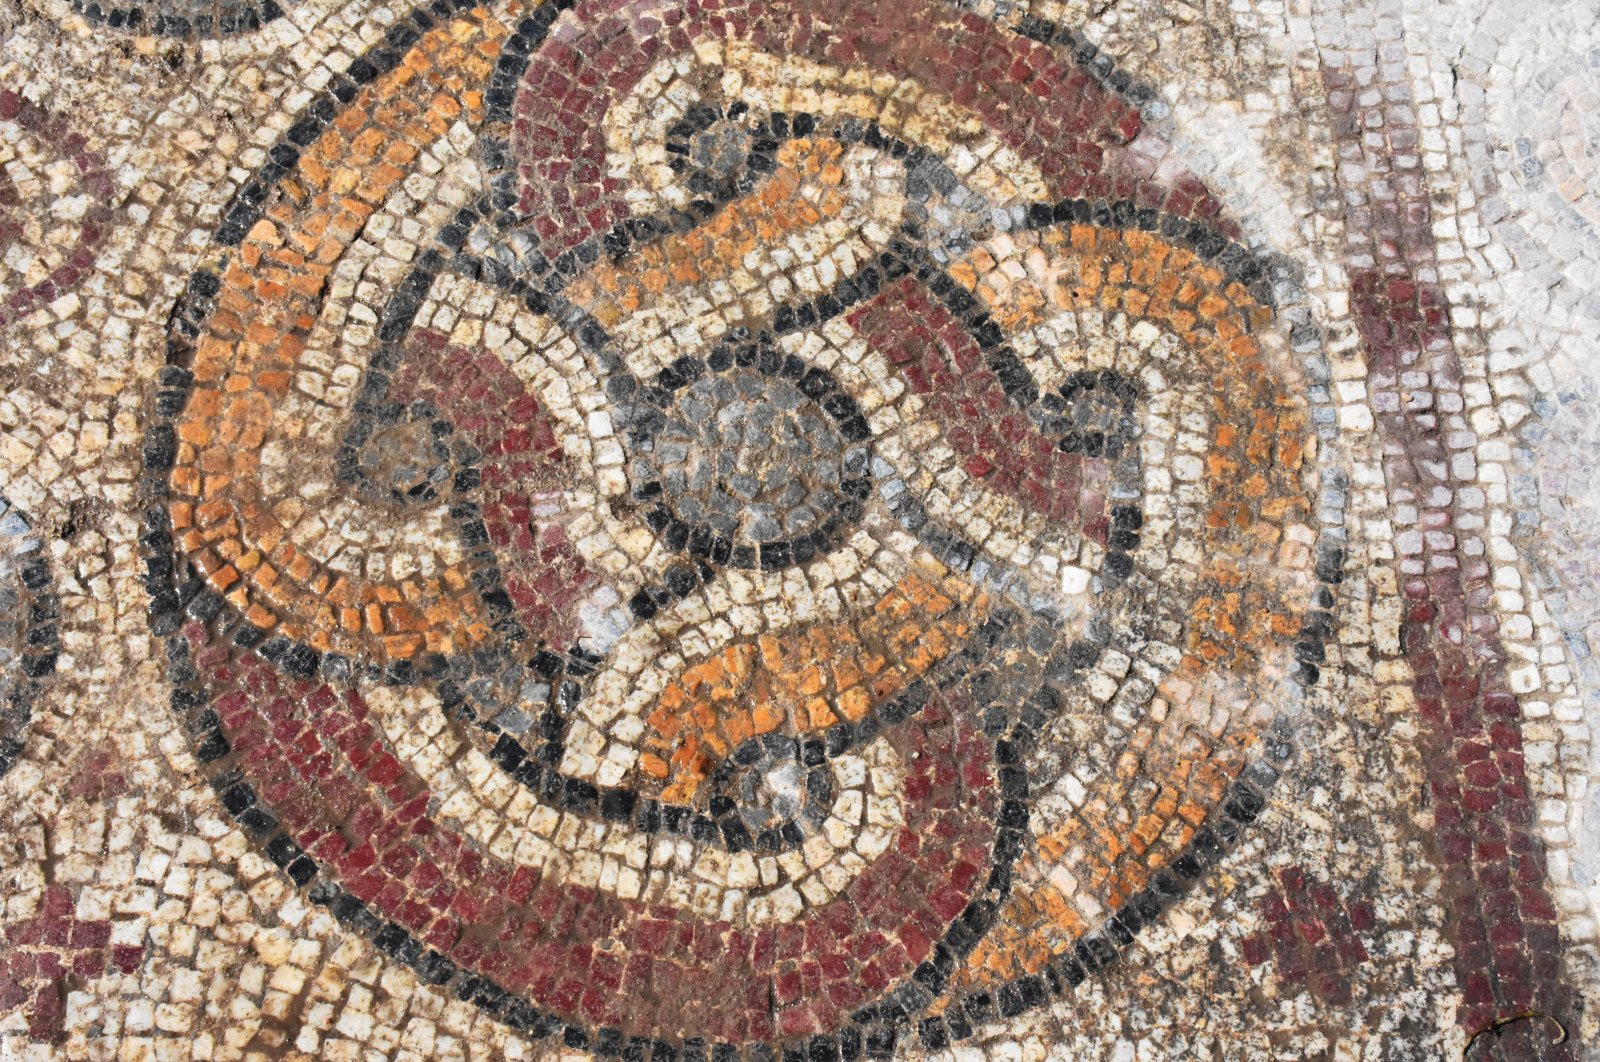 A view from a mosaic found in the ancient city of Stratonikeia, Muğla, southwestern Turkey, July 18, 2021. (AA Photo)